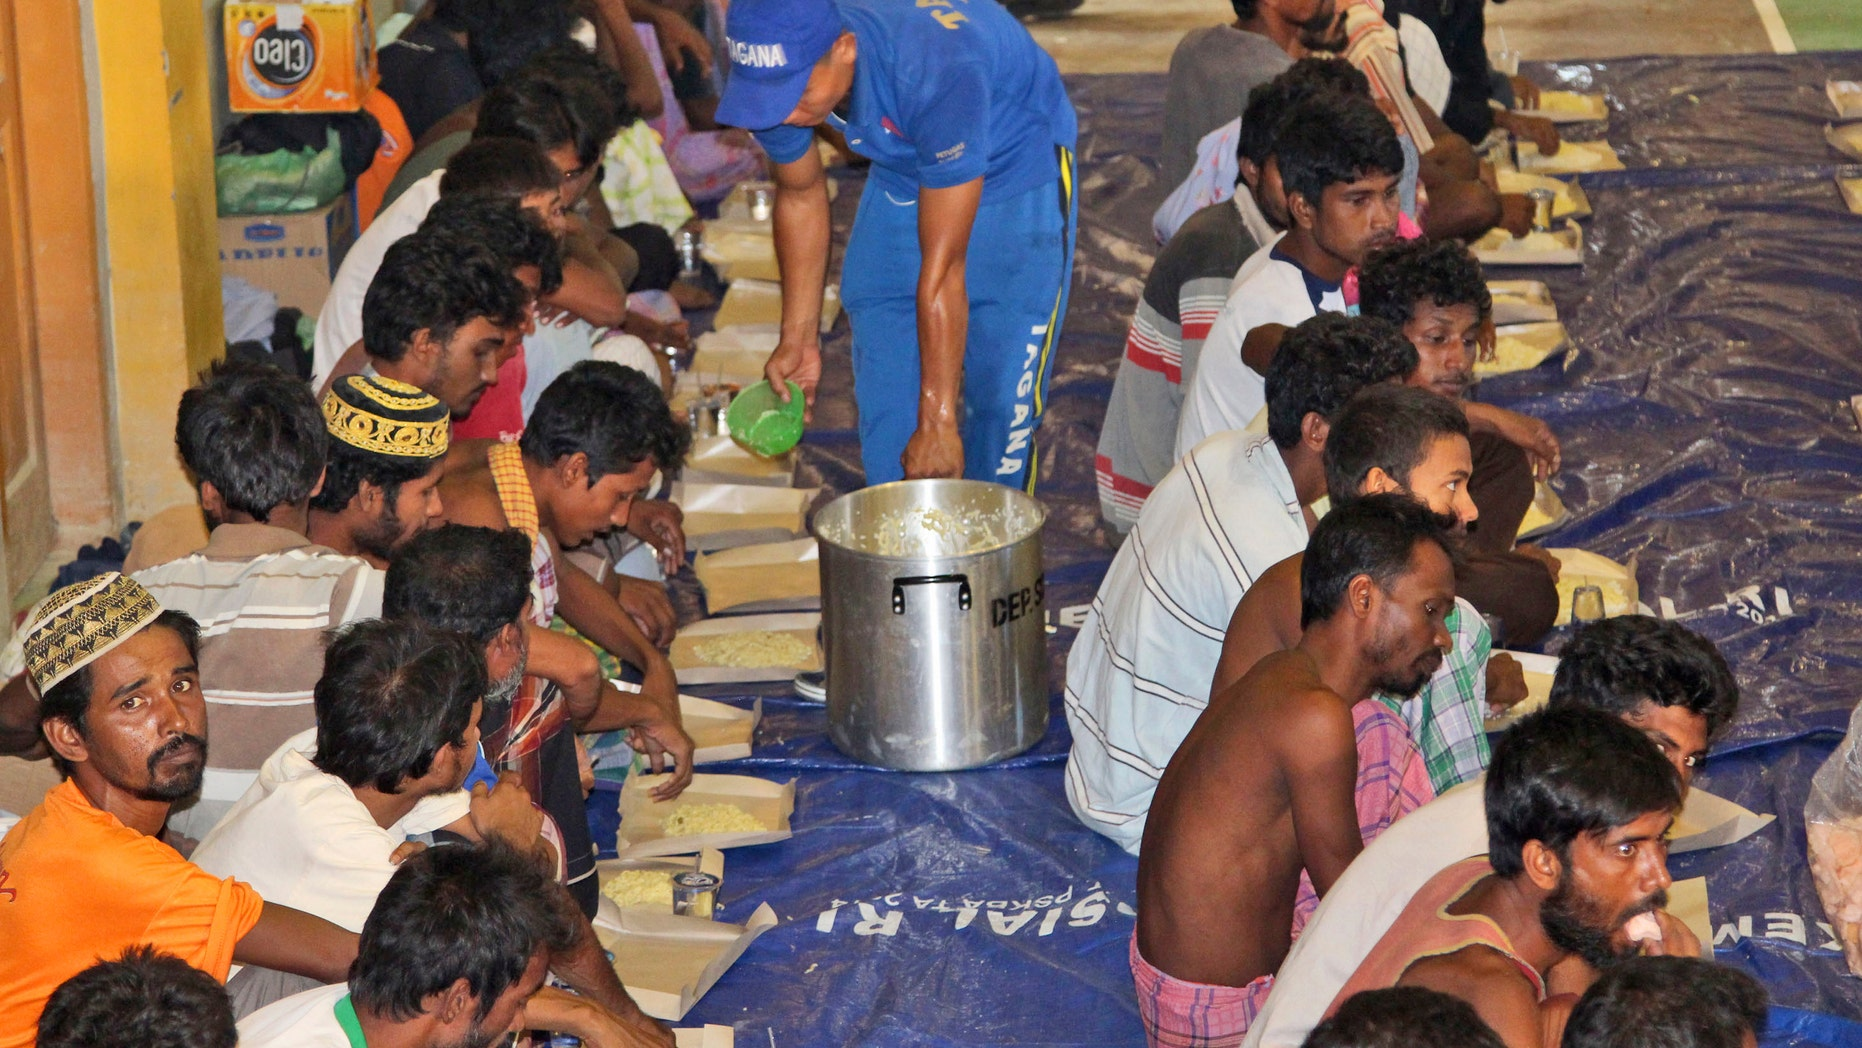 May 11, 2015 - Ethnic Rohingya migrants receive food from a social worker at a temporary shelter in Lhok Sukon, Aceh province, Indonesia. Boats carrying nearly 600 Bangladeshis and long-persecuted Rohingya Muslims from Myanmar washed ashore in western Indonesia, some after captains and smugglers abandoned the ships, survivors said.